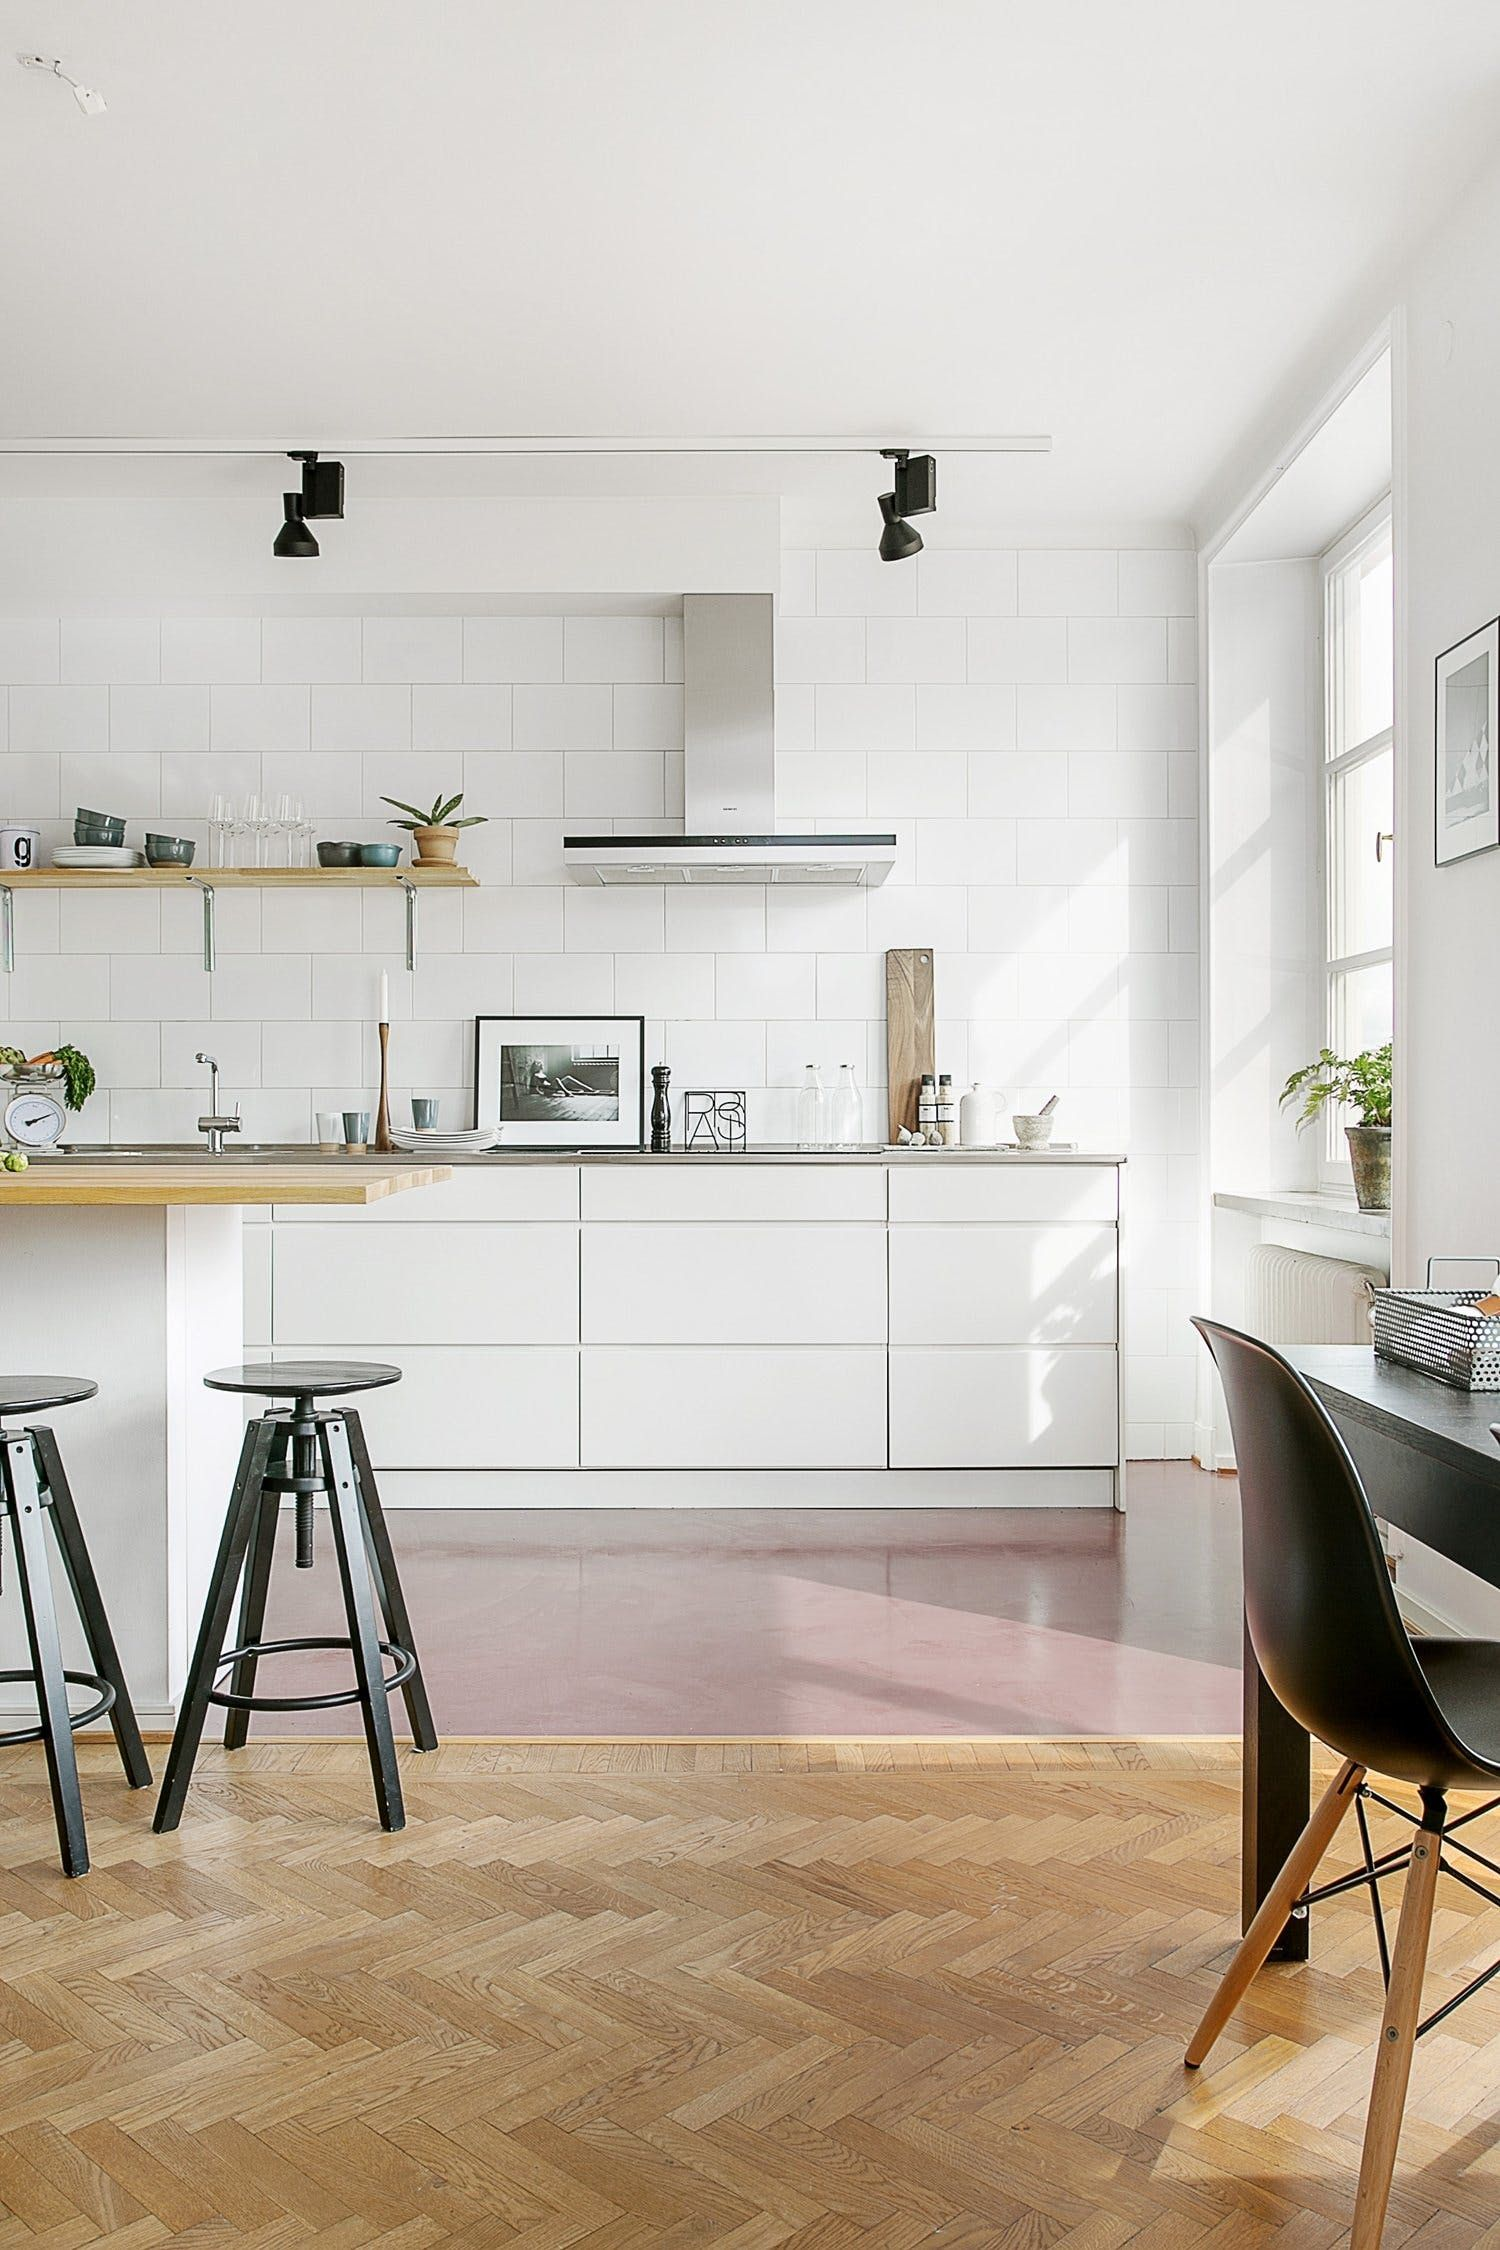 Details & Design Ideas to Borrow From Modern Kitchens (No Matter ...